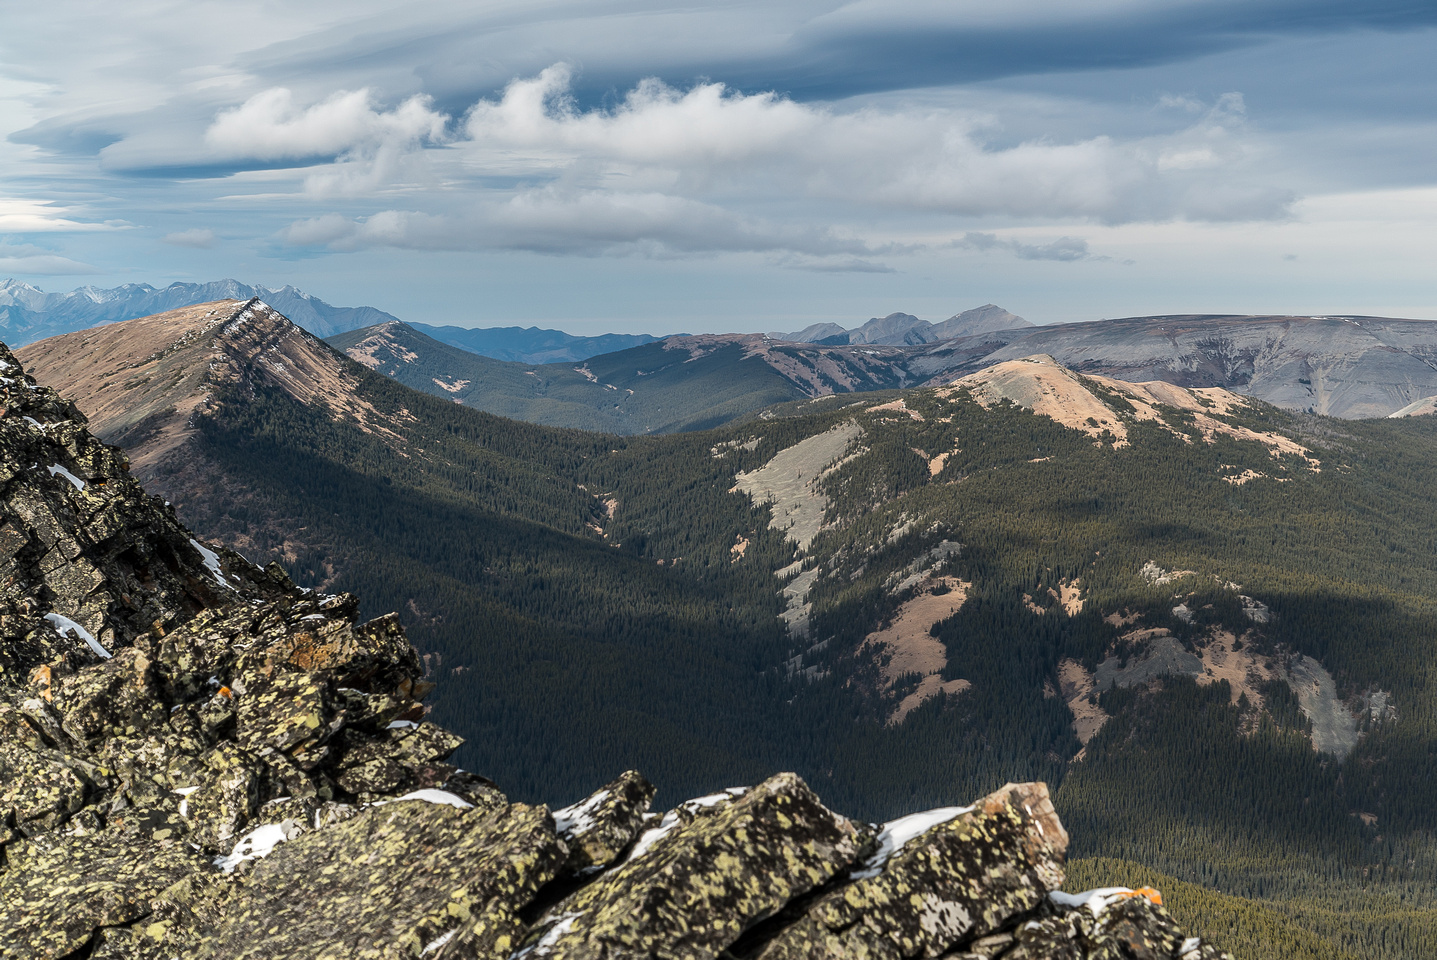 Looking over an outlier ridge of Pasque (L) towards Burke in the far distance over the shoulder of Plateau Mountain.